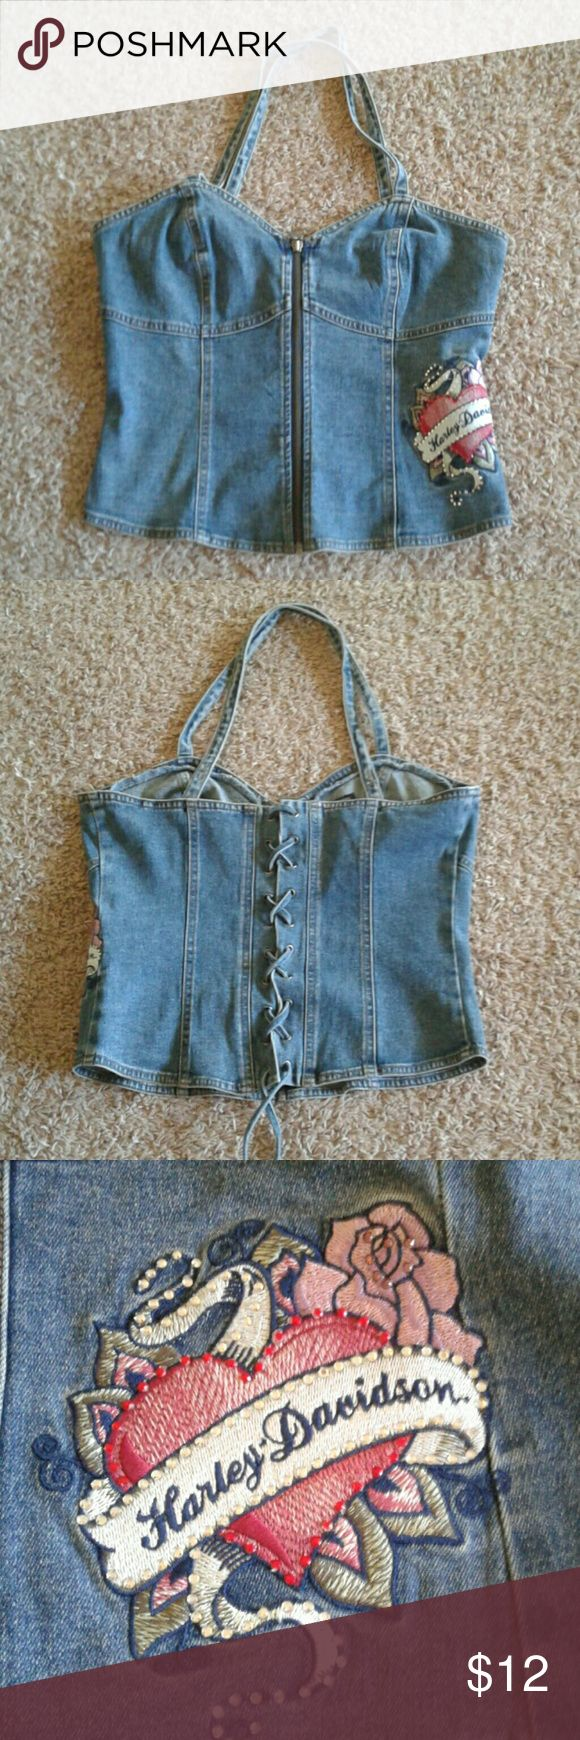 Harley Davidson Jean Halter Corset Top Size M Harley Davidson jean corset top size M.  In my opinion it fits more like a Large.  You could even go bigger by adjusting the corset back.  Here in the pics I have it tightened all the way.  Pretty embroidery on the side.  The front has full separating zipper, and the straps are somewhat adjustable as you can move to one more button hole.  Straps criss cross in the back.  Really cute and well made top ☺ Harley-Davidson Tops Tank Tops